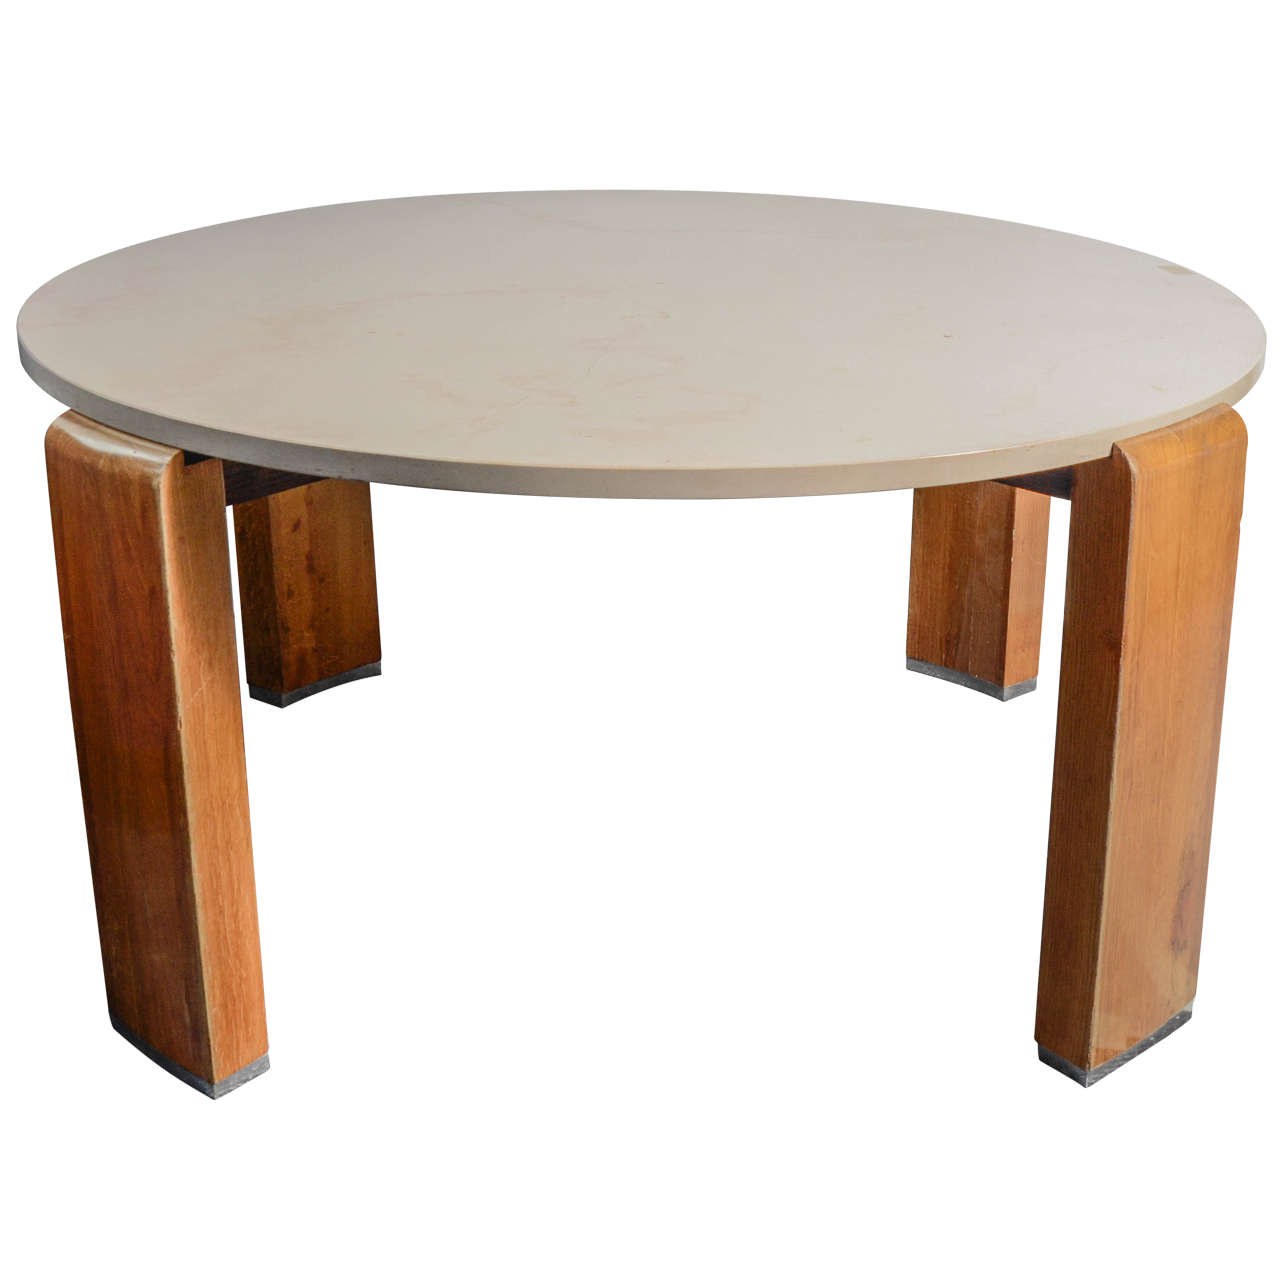 Round Pedestal Table By Jacques Adnet At 1stdibs